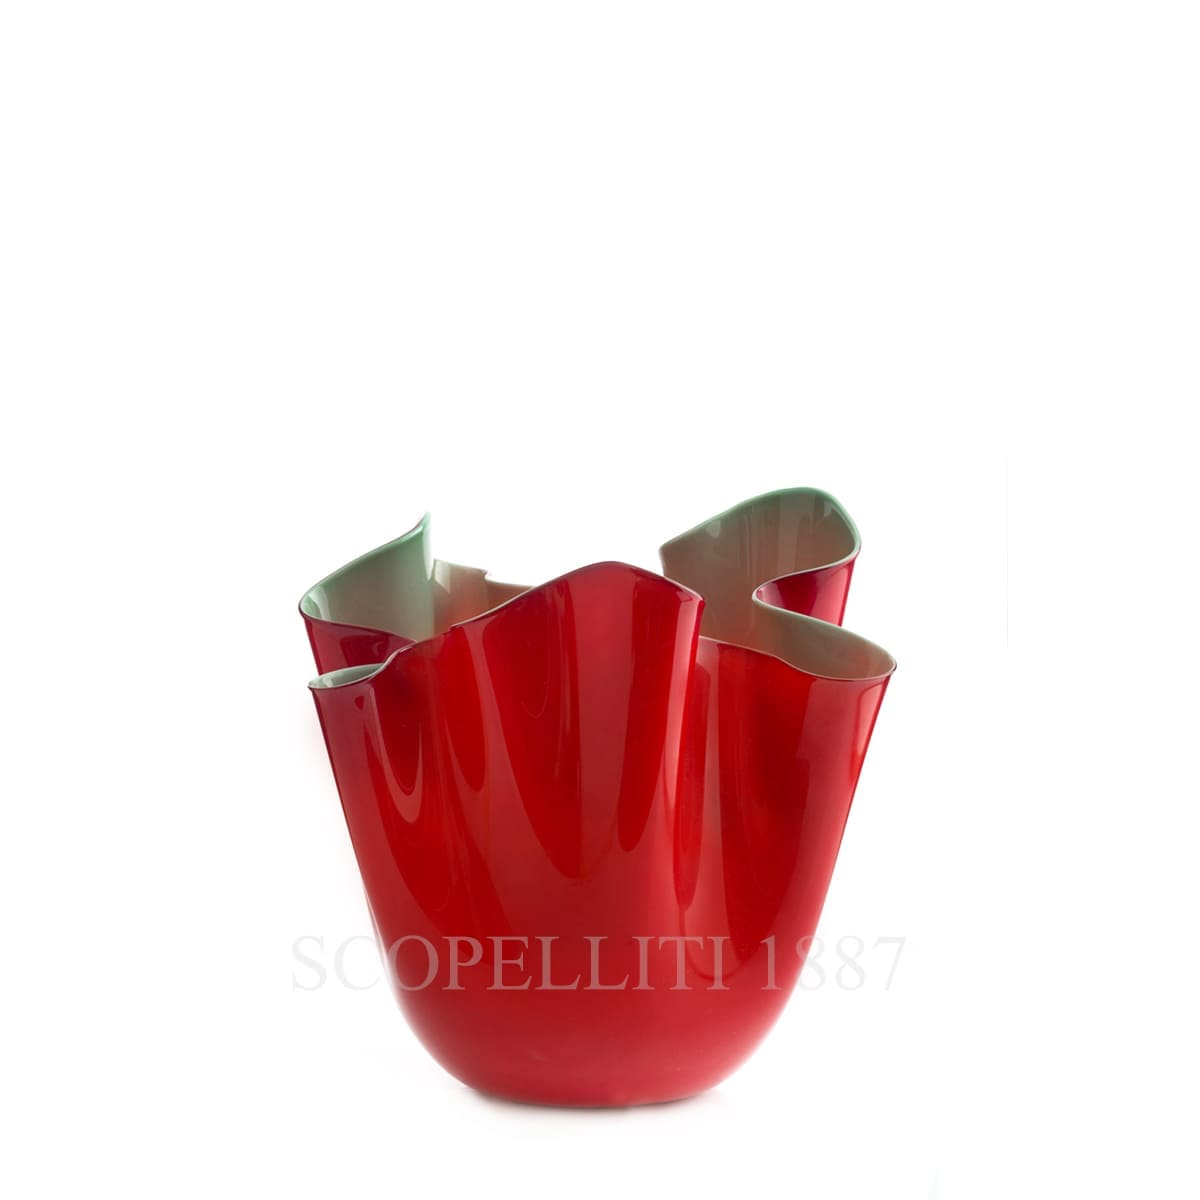 fazzoletto venini small vase red green